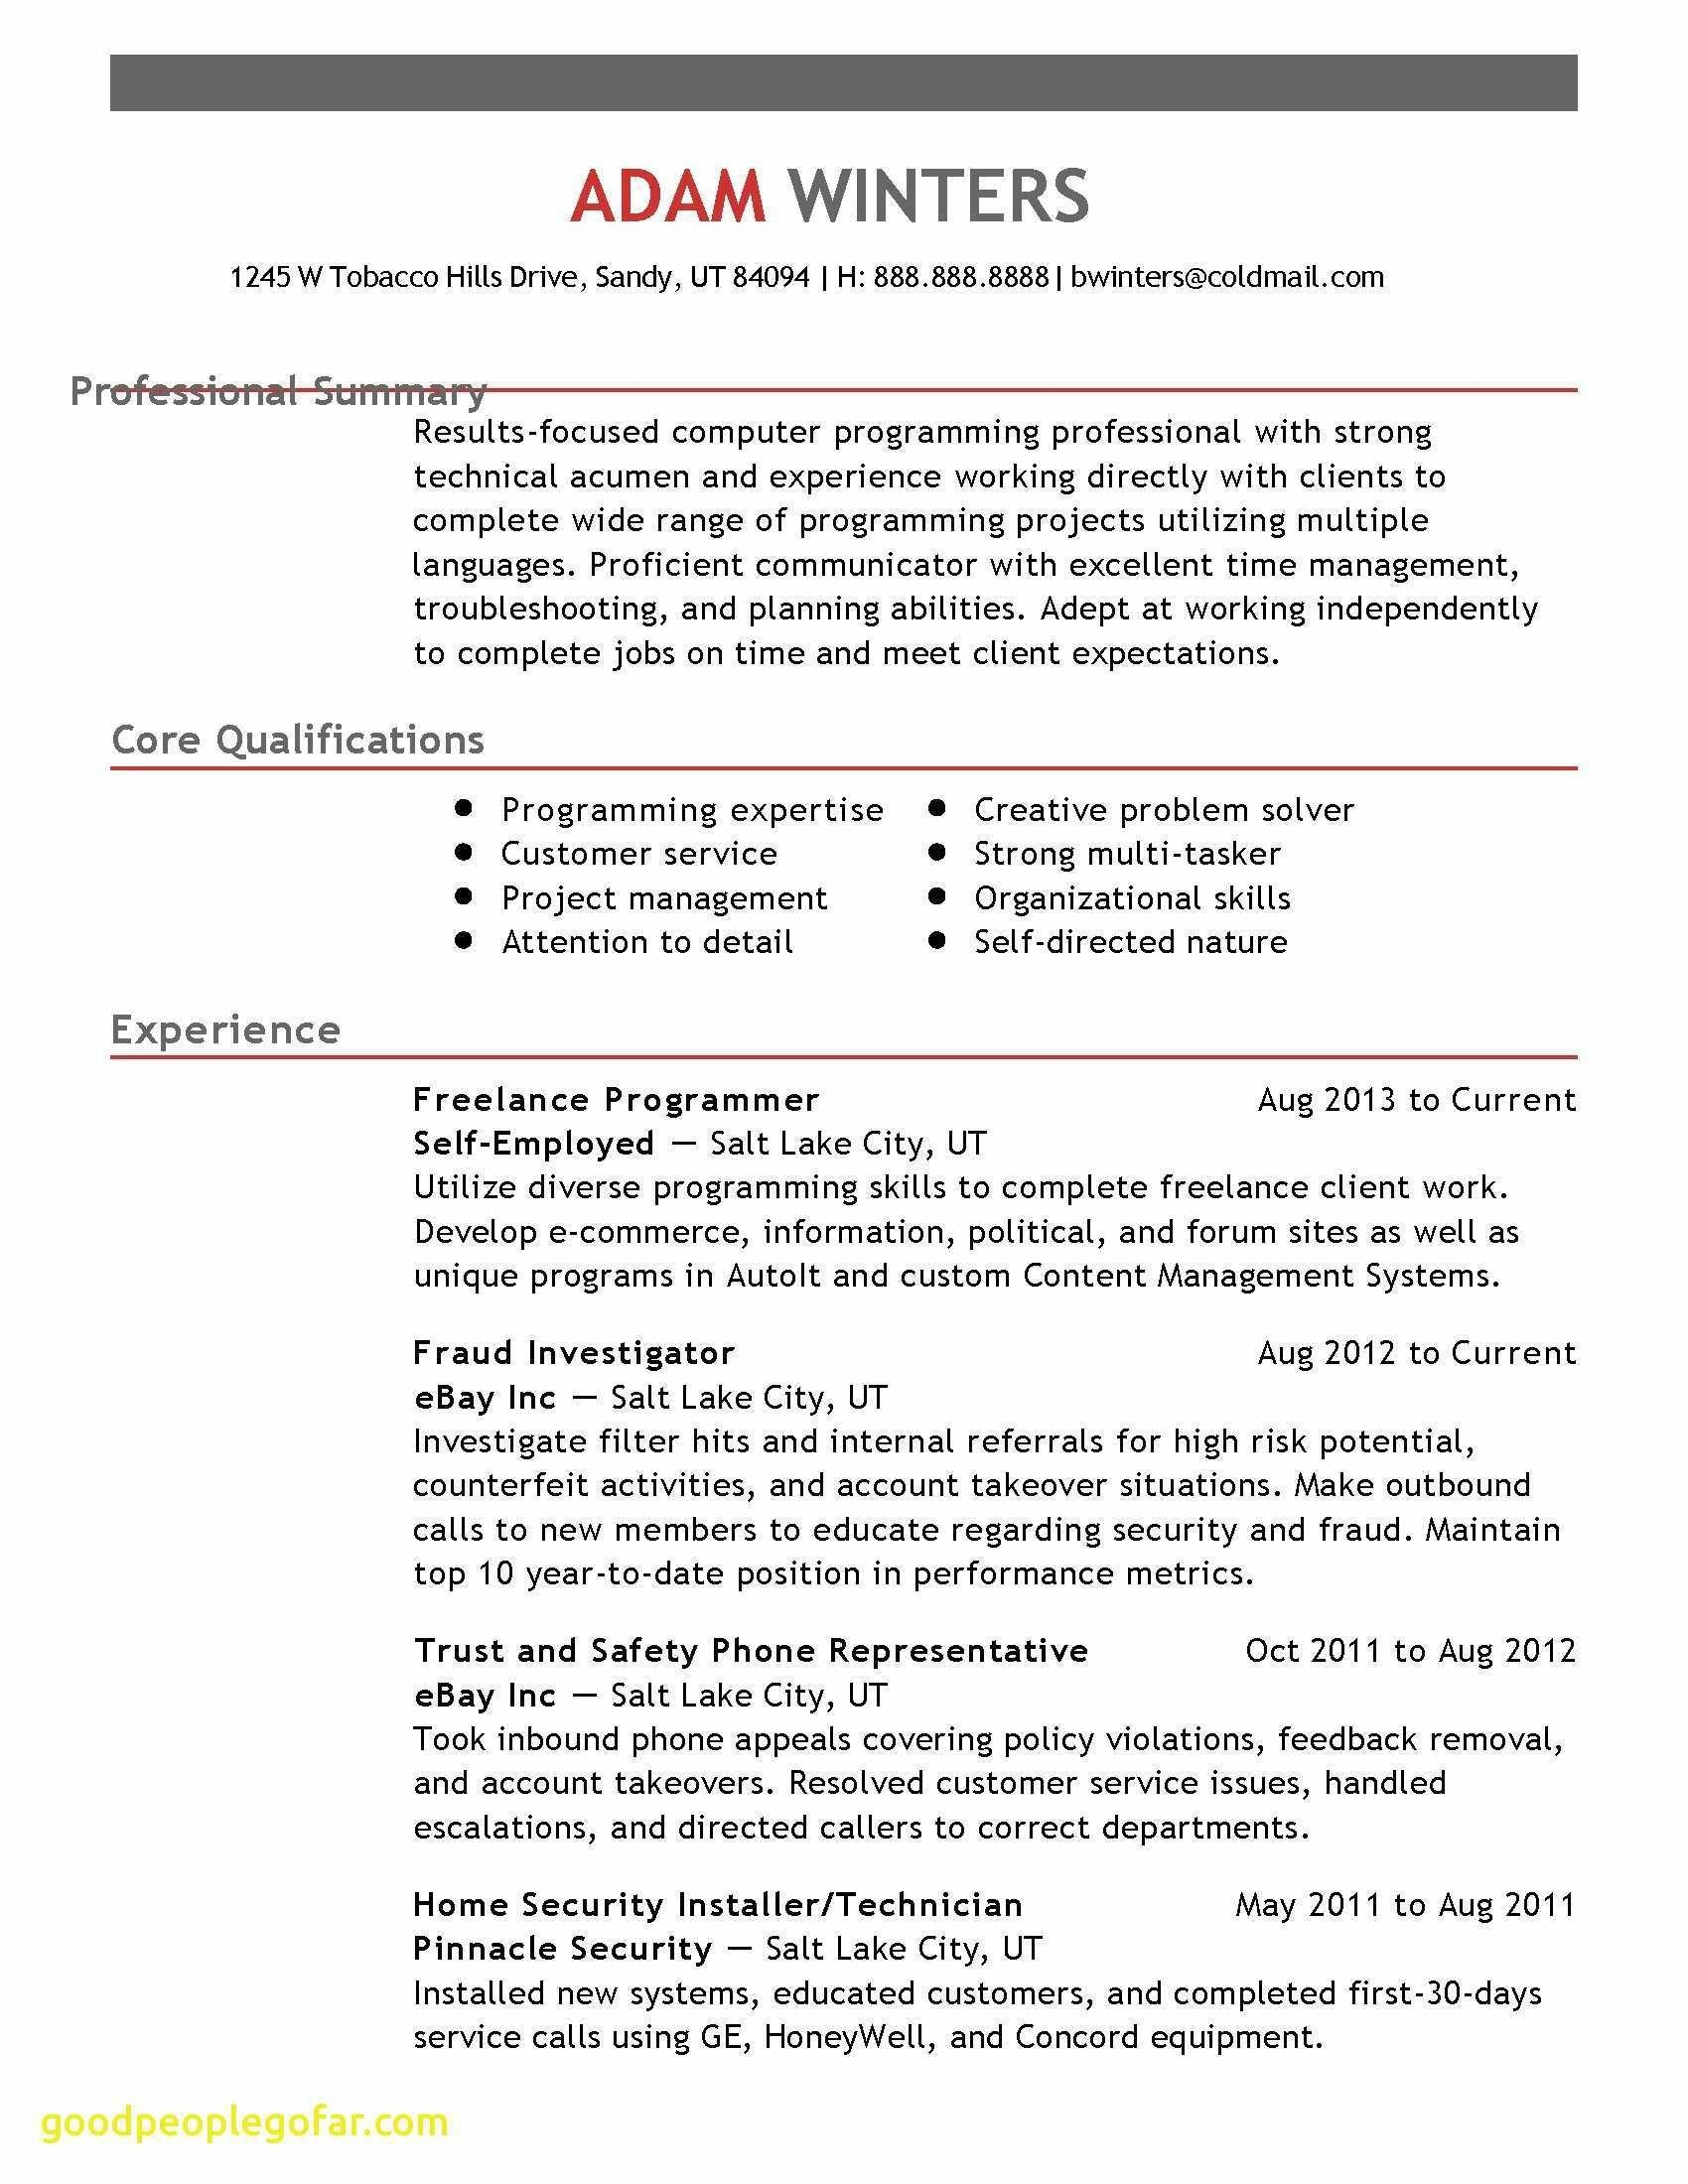 Professional Resume Template Free - Resume Website Examples New Resume Website Template Free